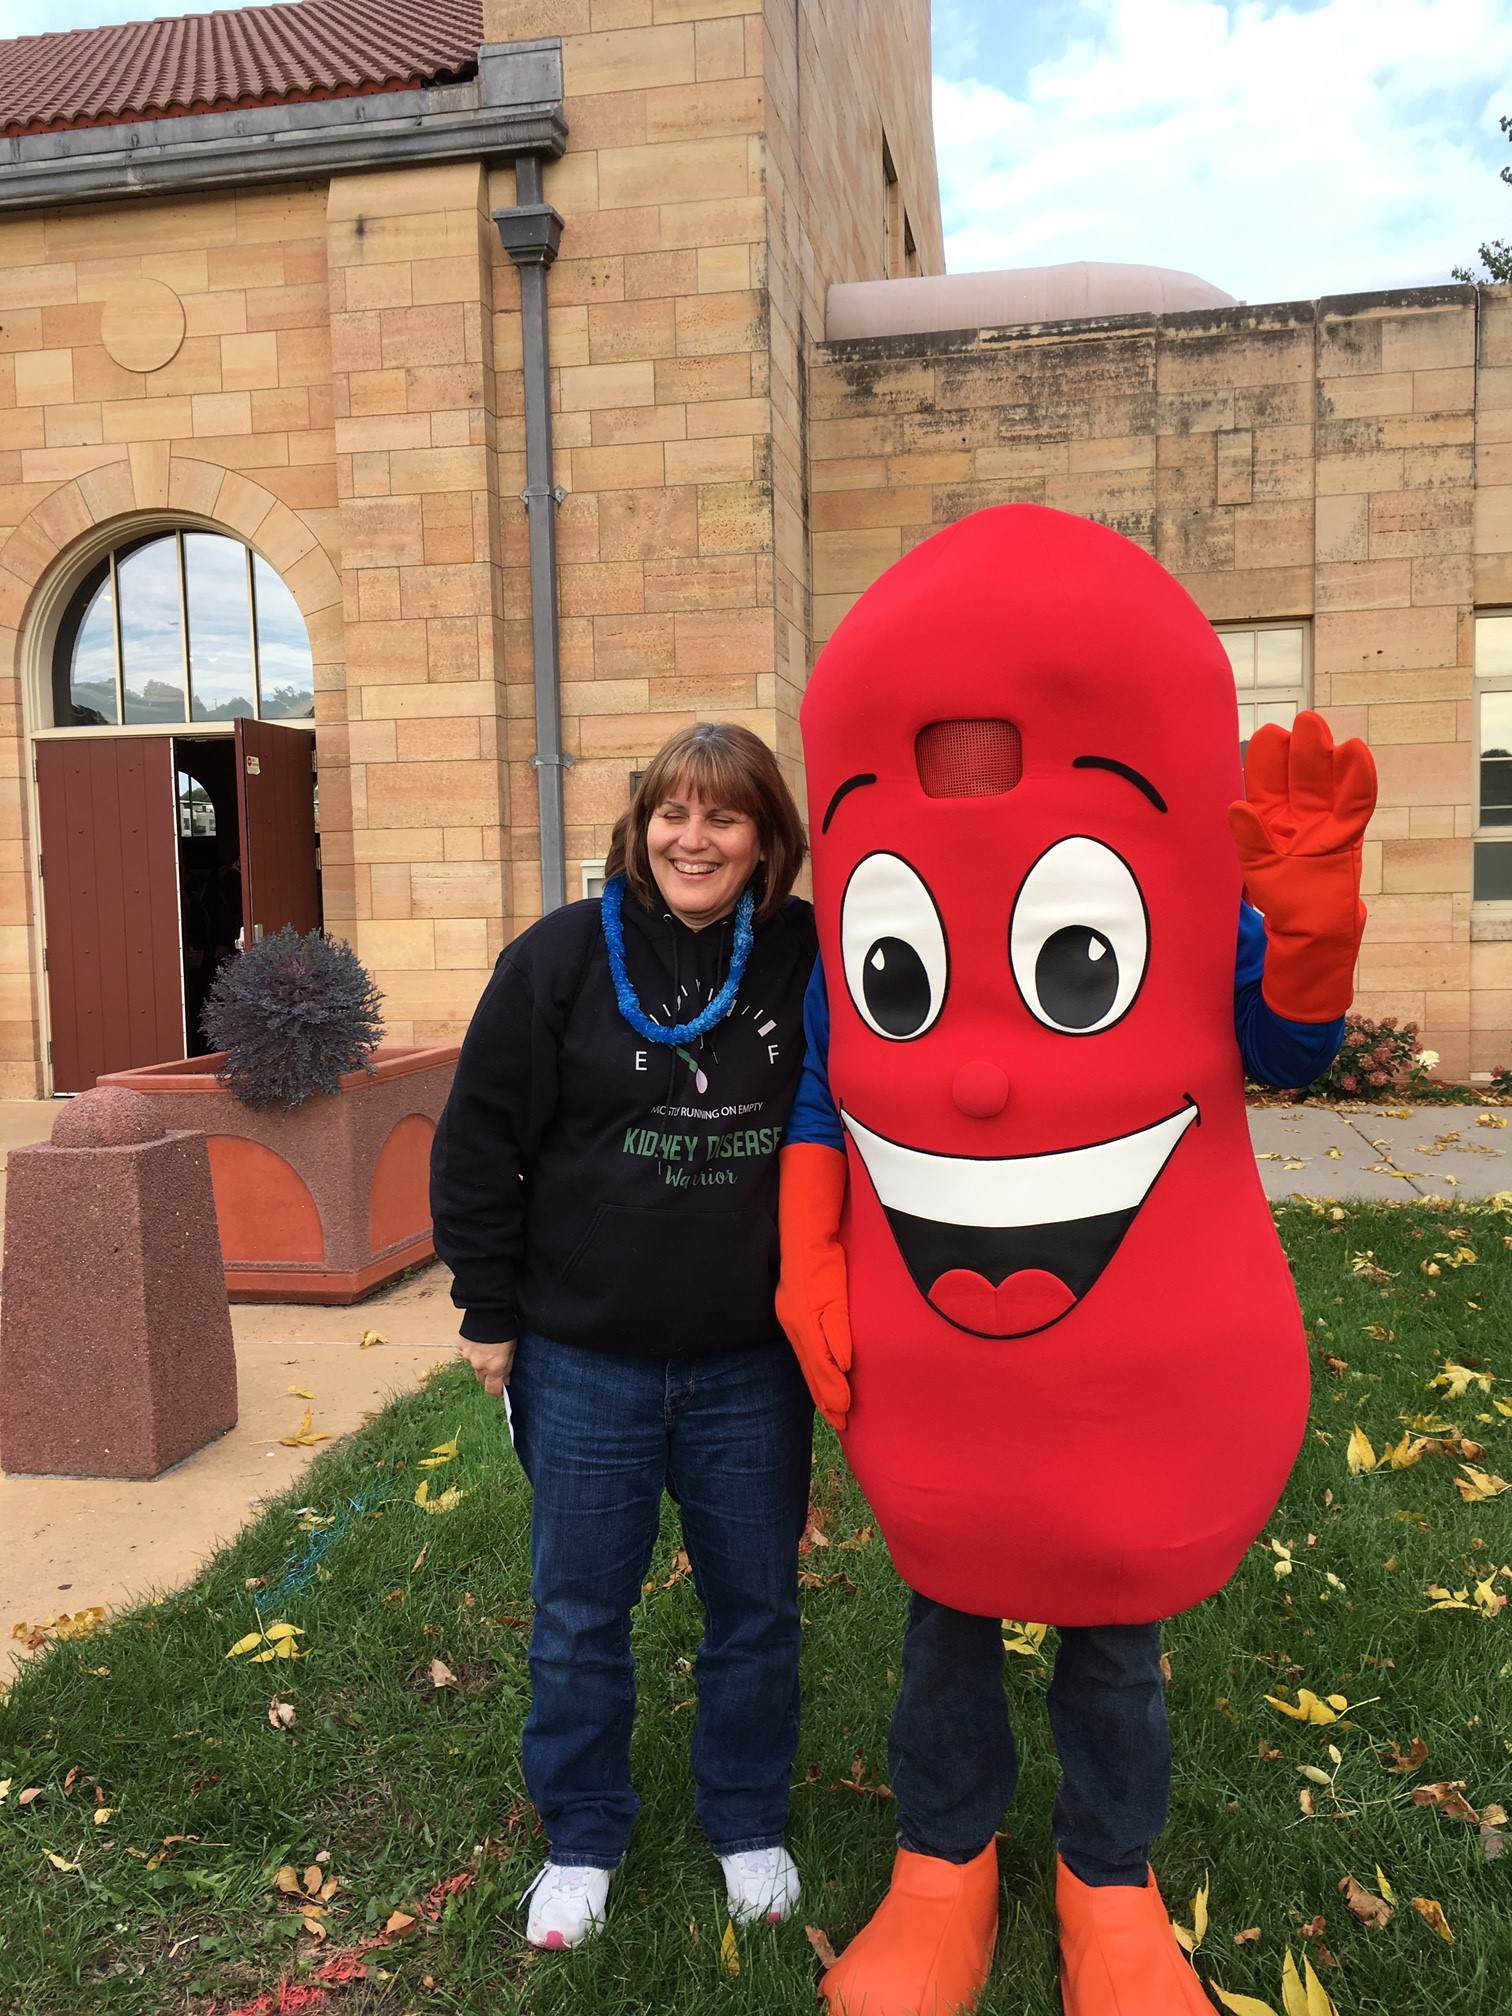 Lynn Nelson with Kidney Mascot   Kidney Walk  Students planned and worked very hard on fundraising.  Their goal was $500, they ended up collecting $6,019.00!!!